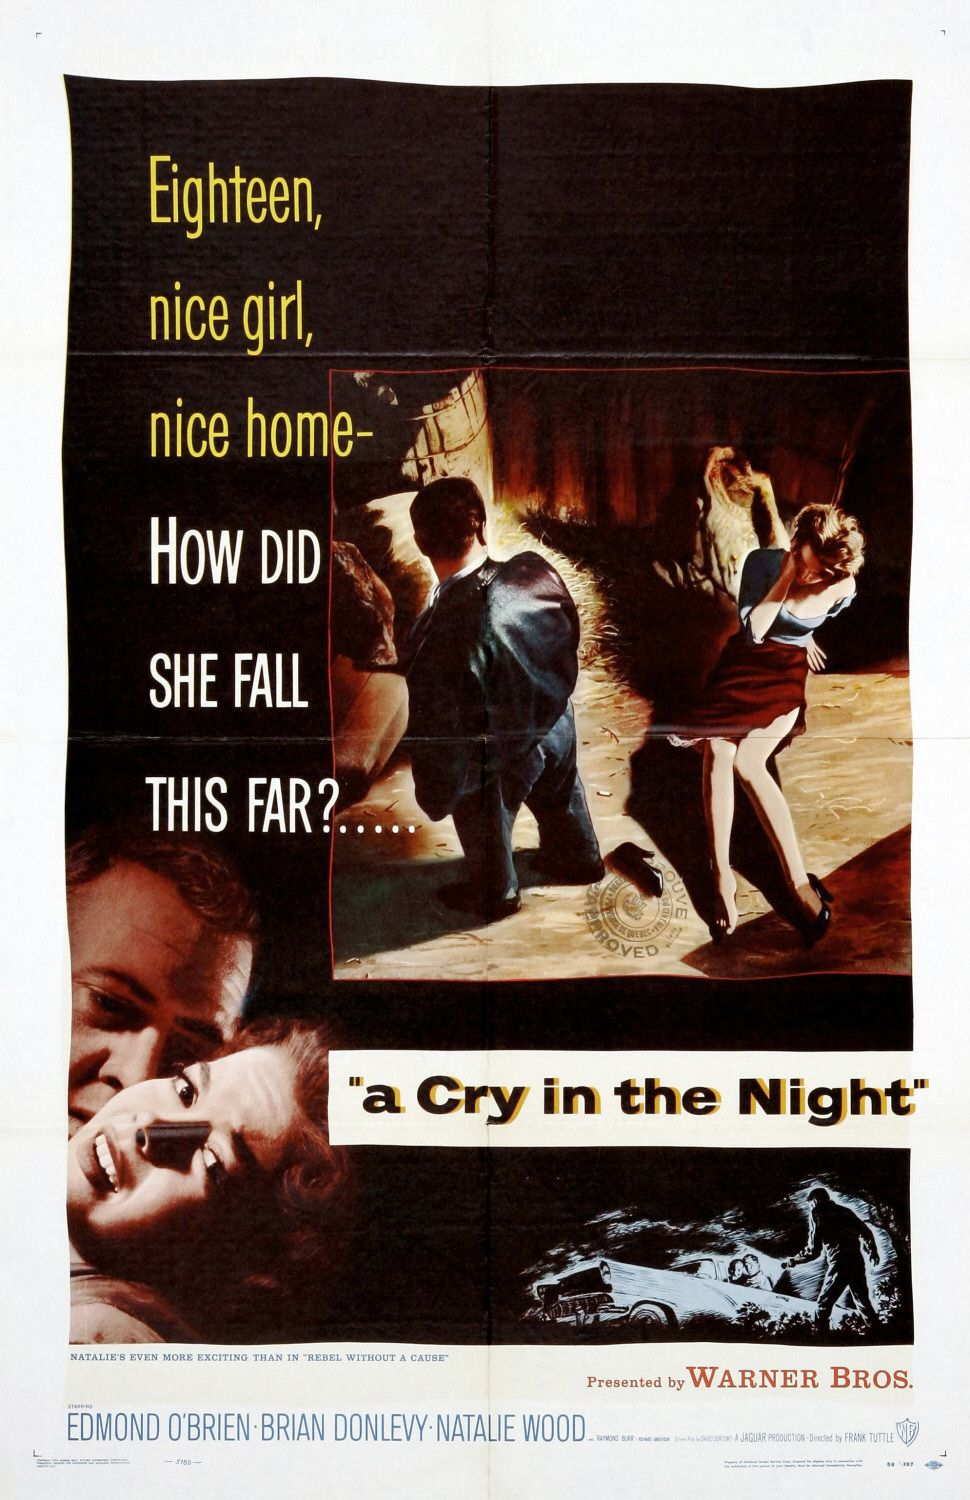 A Cry in the Night (film)